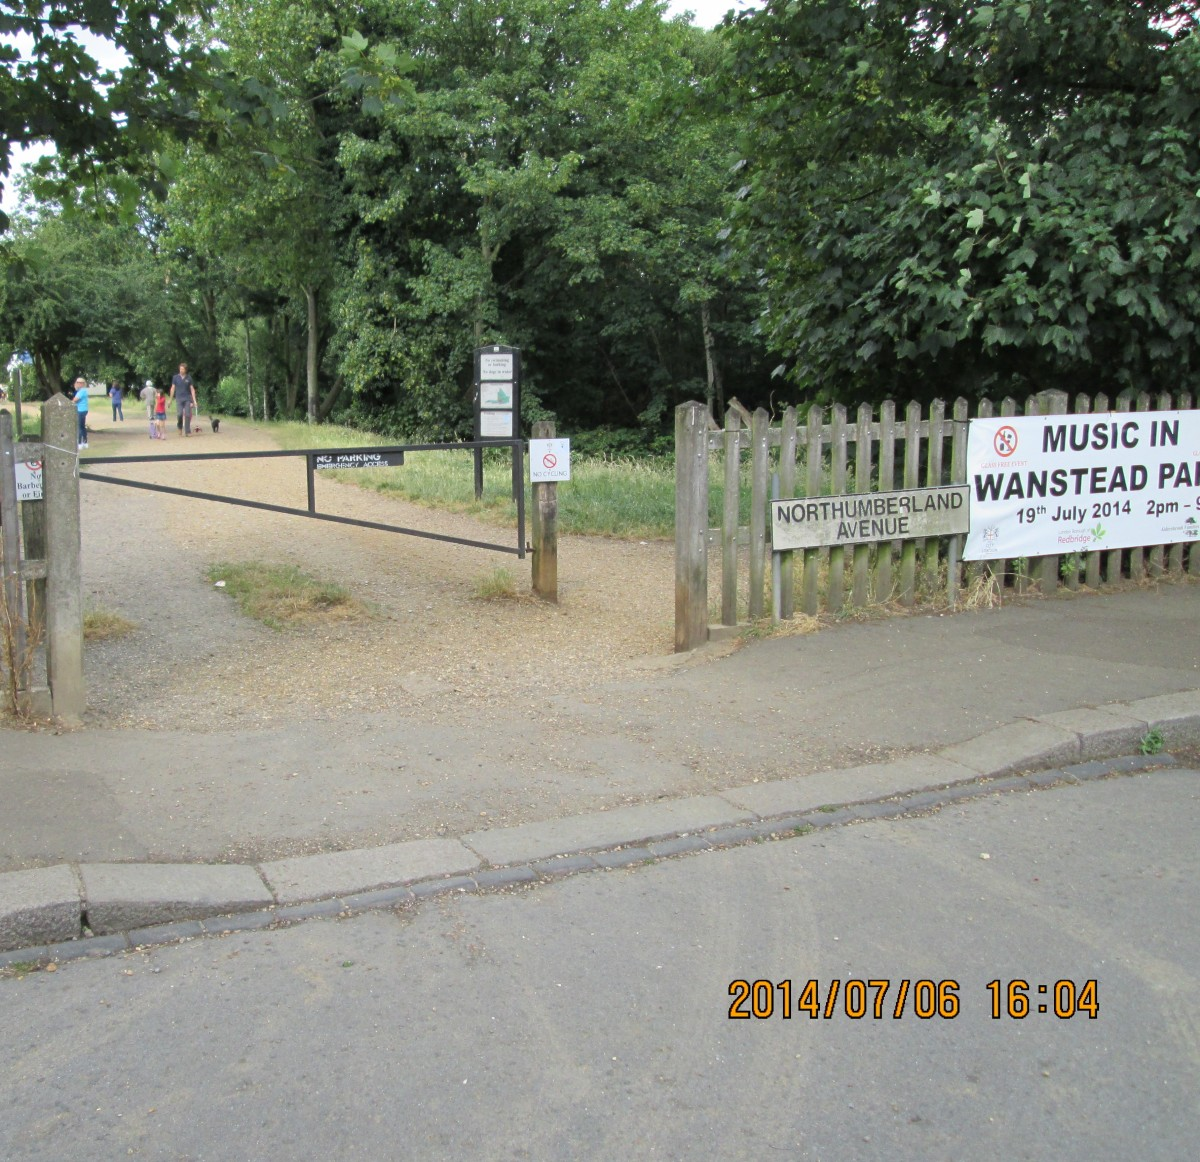 Heron Gate (what there is now), leading into the park from Wanstead Park Avenue, at the other end of which is Wanstead Flats, the southernmost extremity of the historic Forest of Essex, latterly Epping Forest